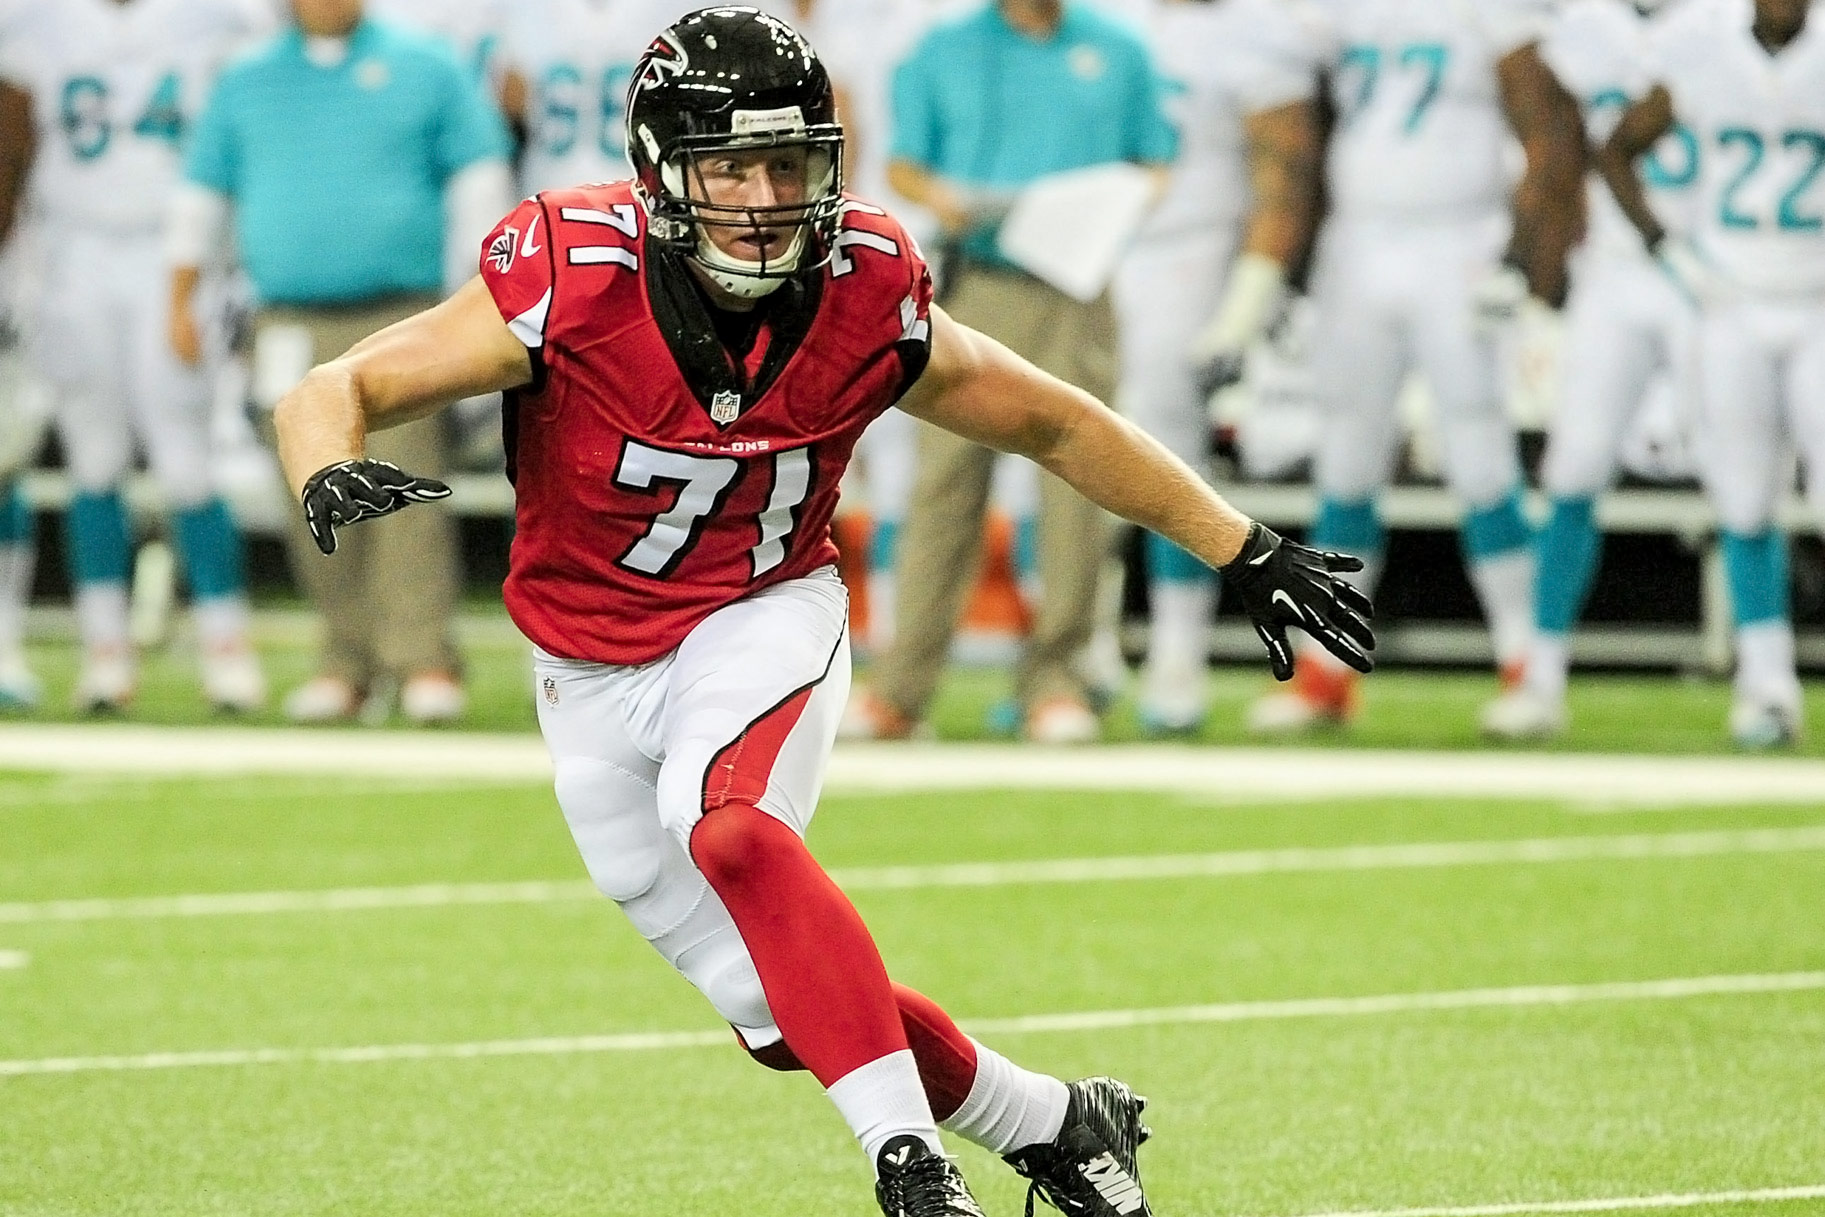 Kroy Biermann Playing Football for the Atlanta Falcons